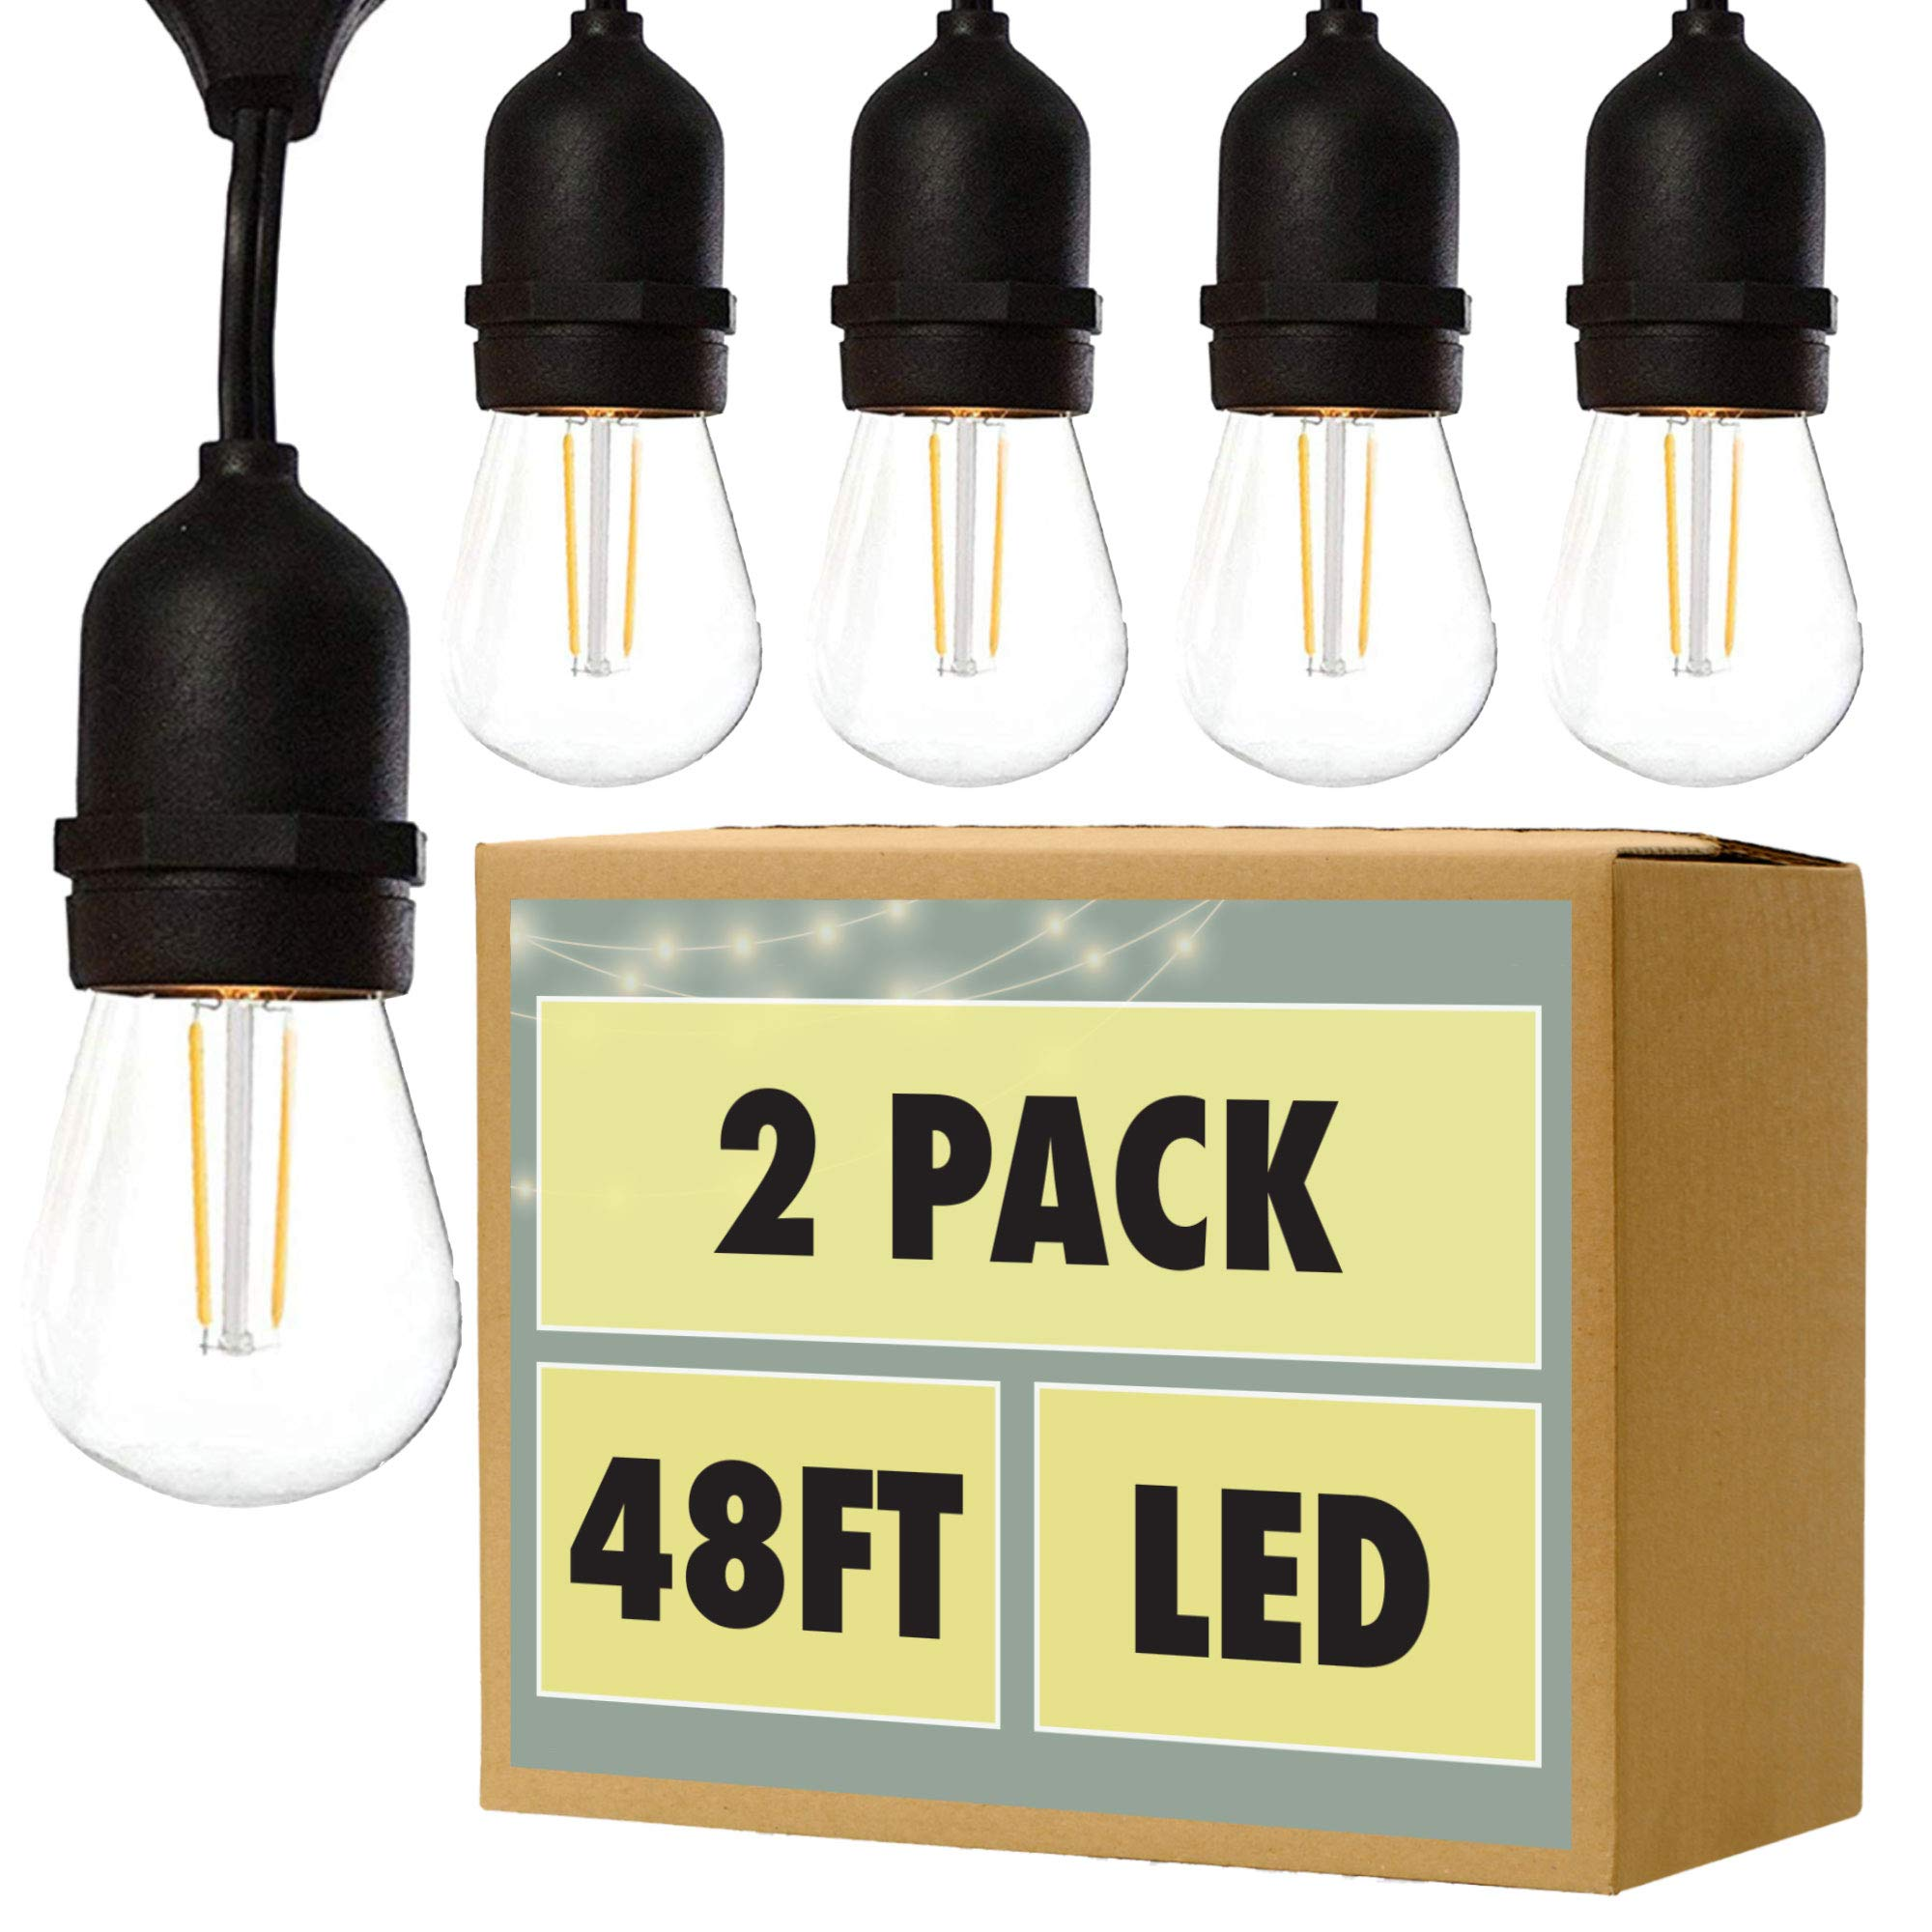 Fulton Illuminations 2 Pack of 48 Ft LED Outdoor String Lights with 6 Extra S14 Bulbs and 13 Foot Matching Extension Cord - Commercial Weatherproof Patio Lights